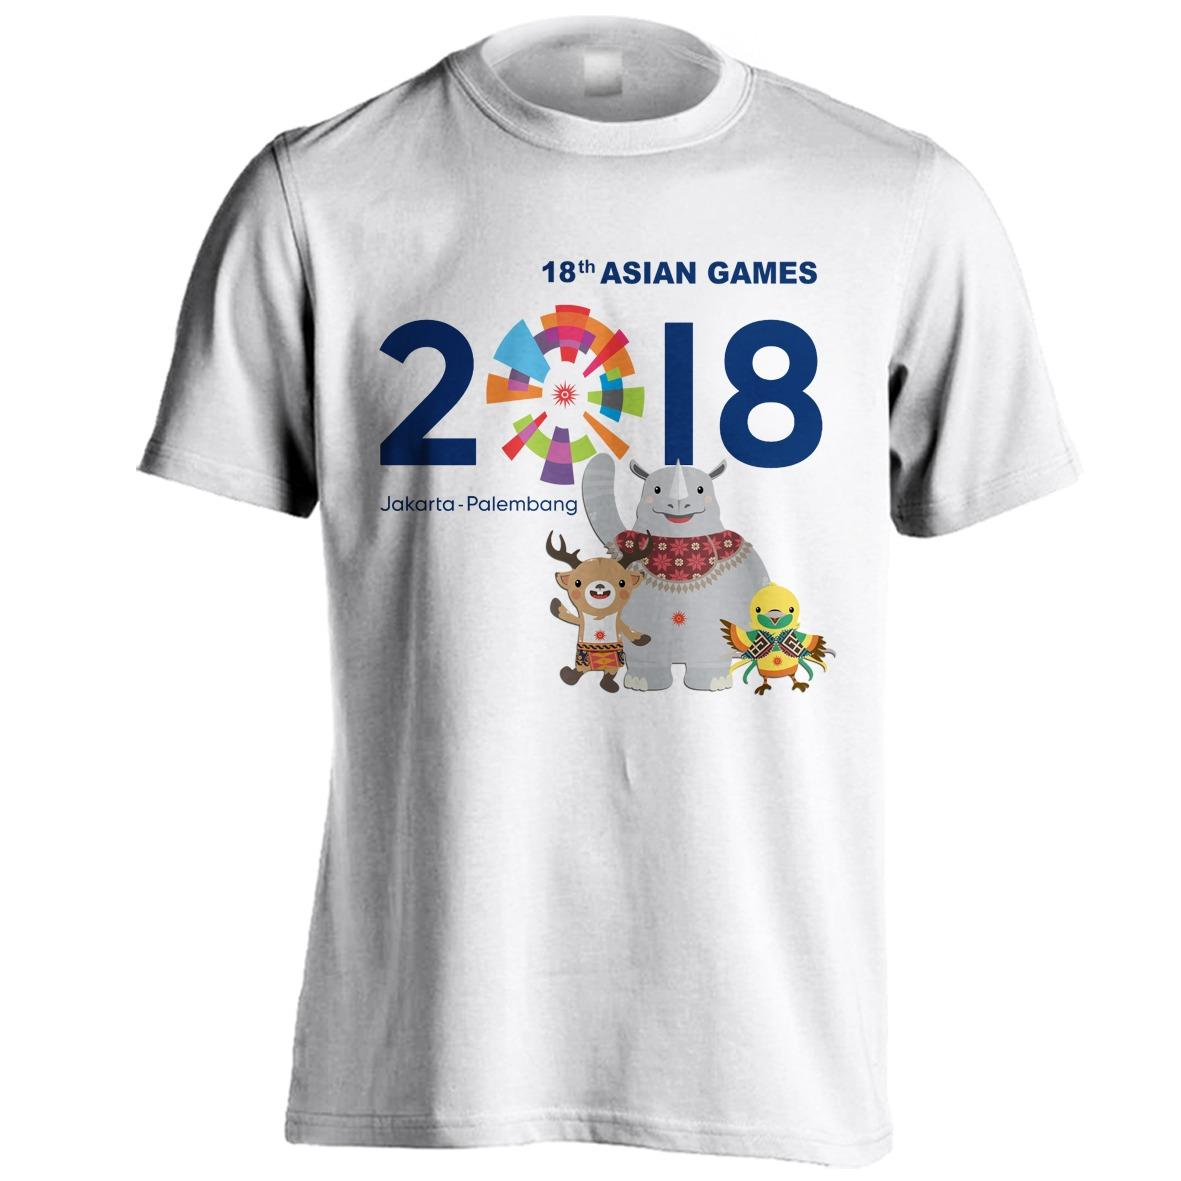 KAOS ASIAN GAMES 2018 JAKARTA PALEMBANG 2018 Energy of Asia Mascot Asian Games Indonesia Juara - MDF STORE